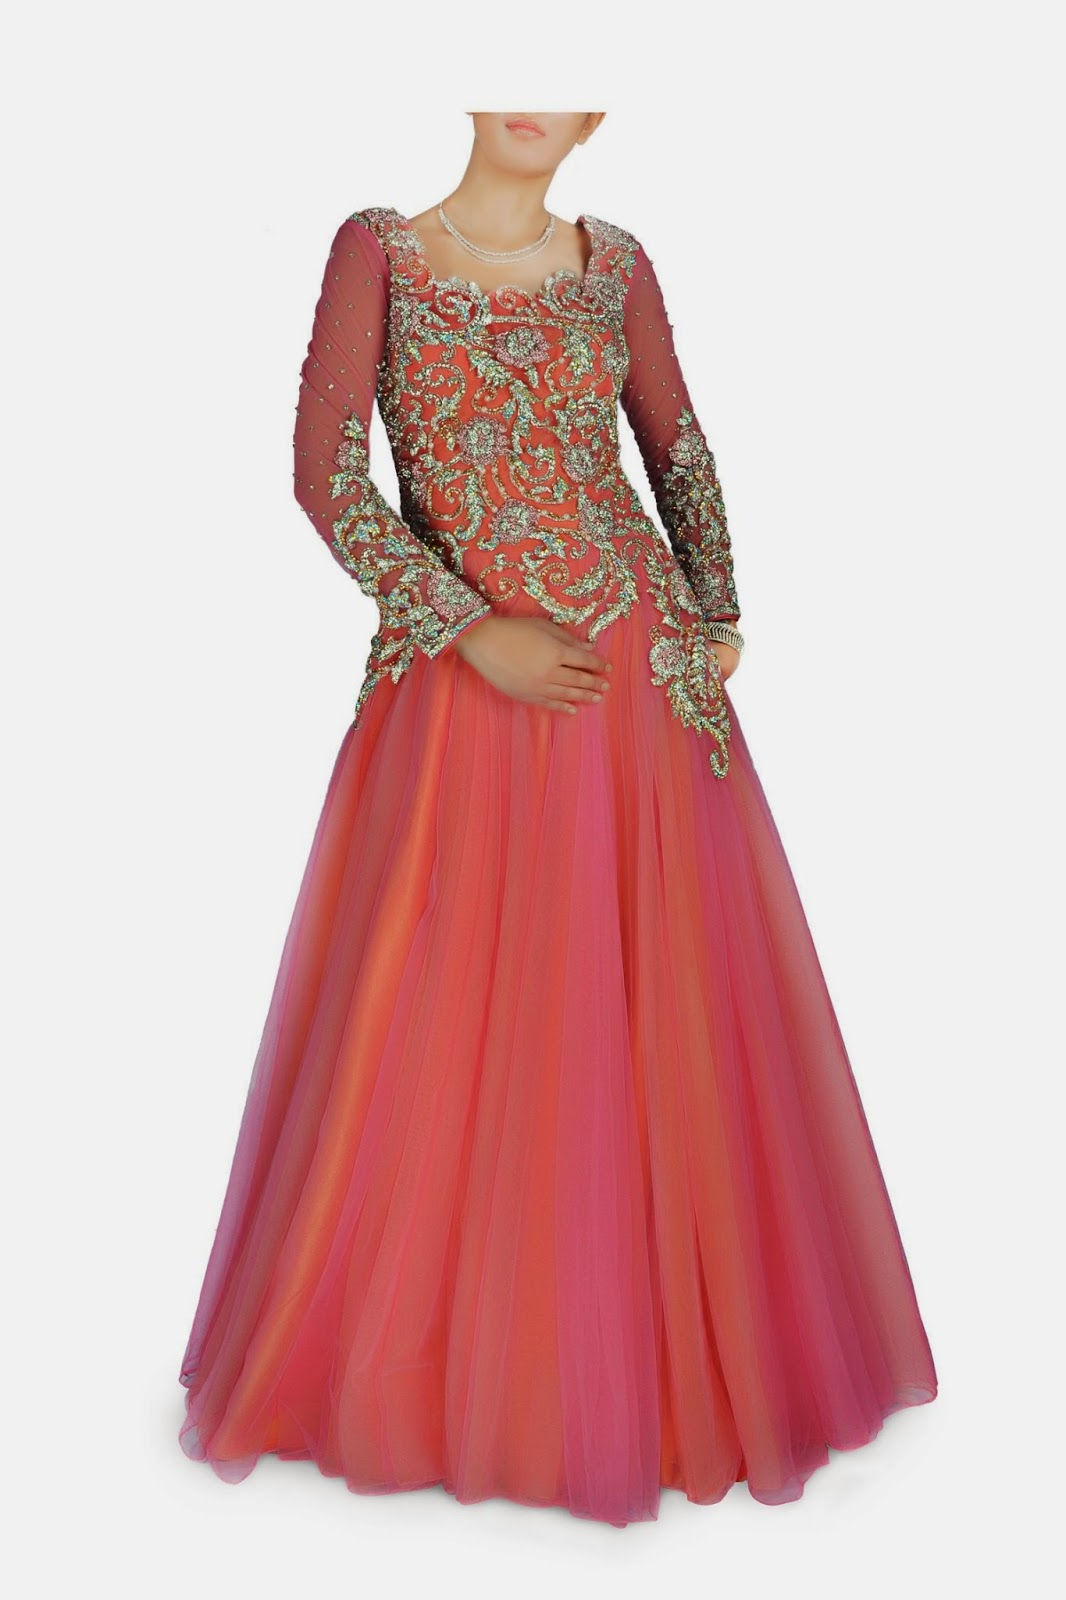 Designer royal wedding and evening gowns 2014 collection for Wedding and evening dresses